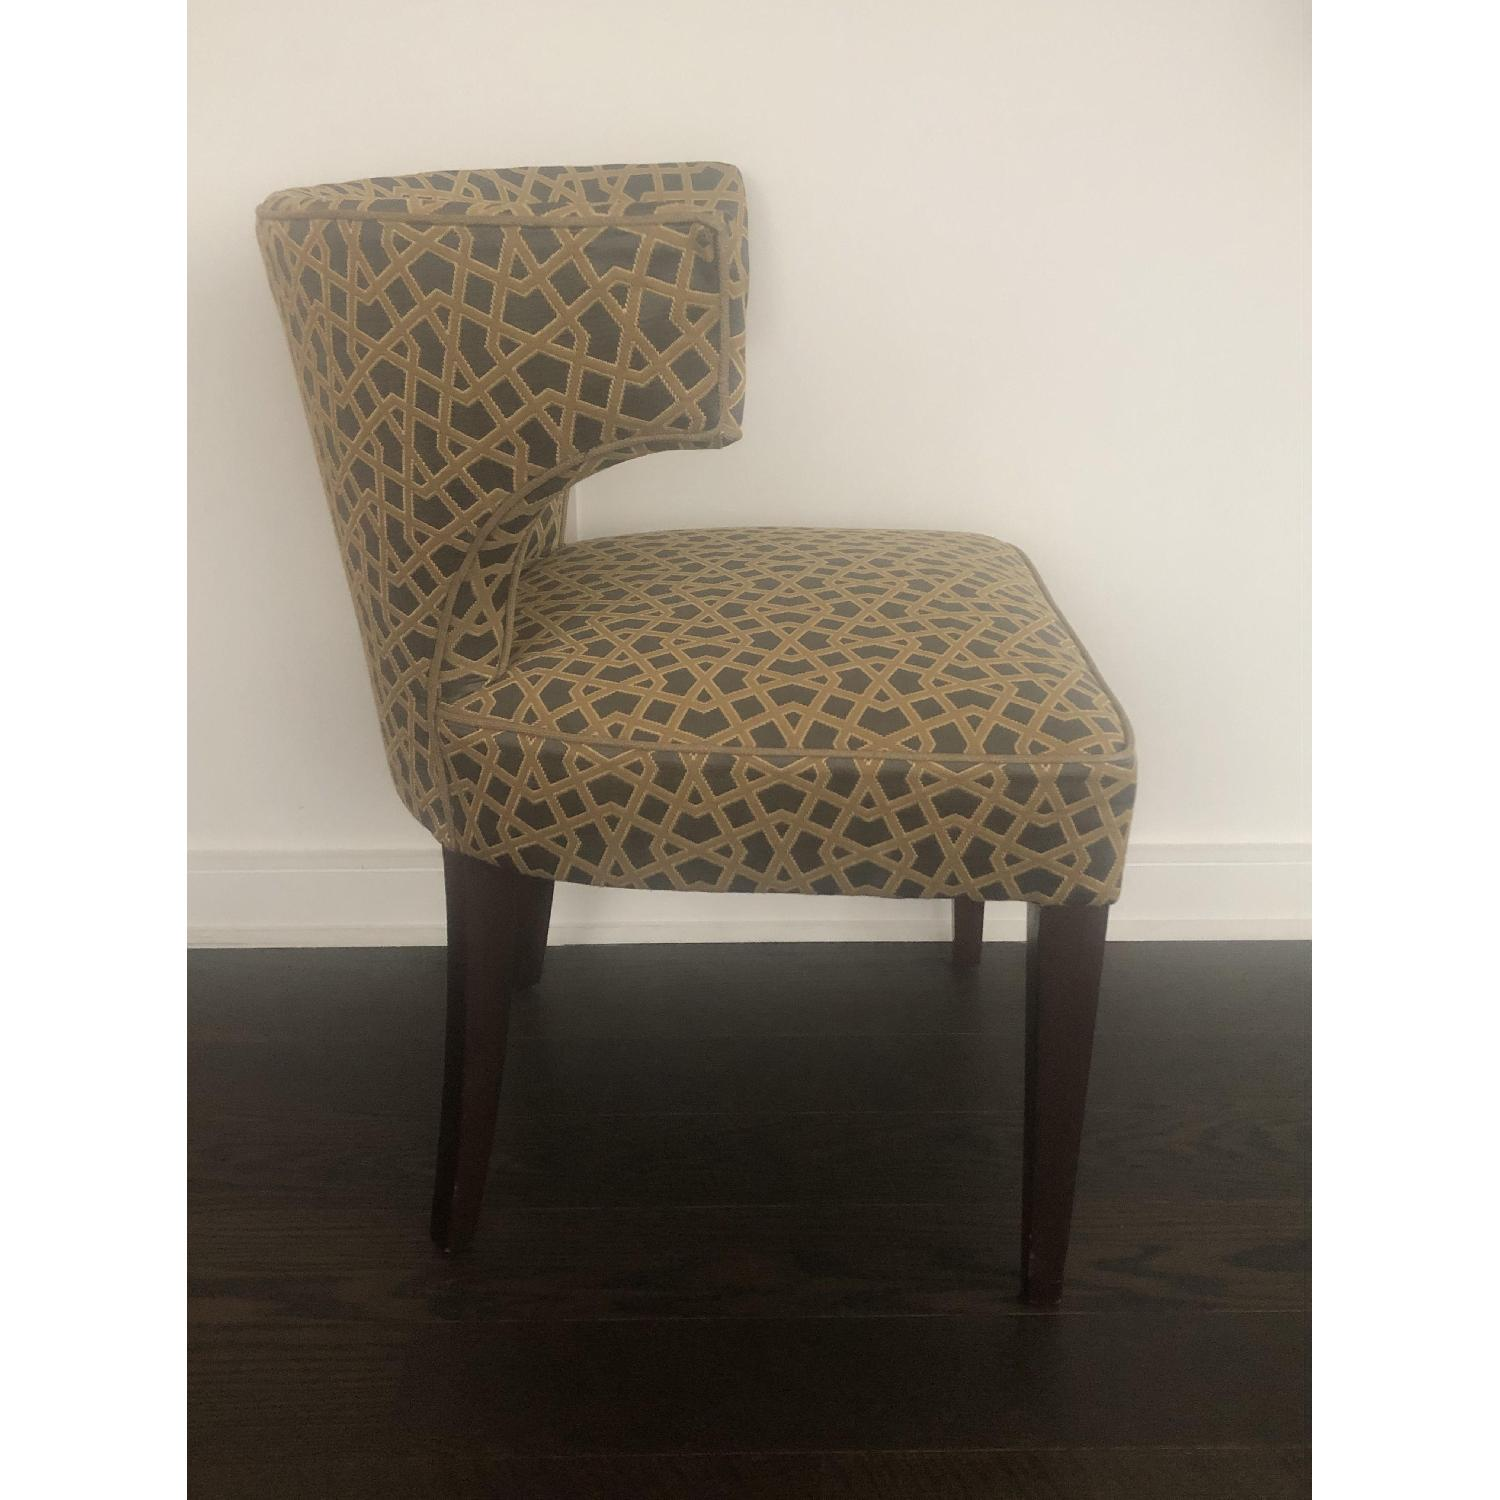 Thomas O'Brien Custom Made Accent Chairs - image-2